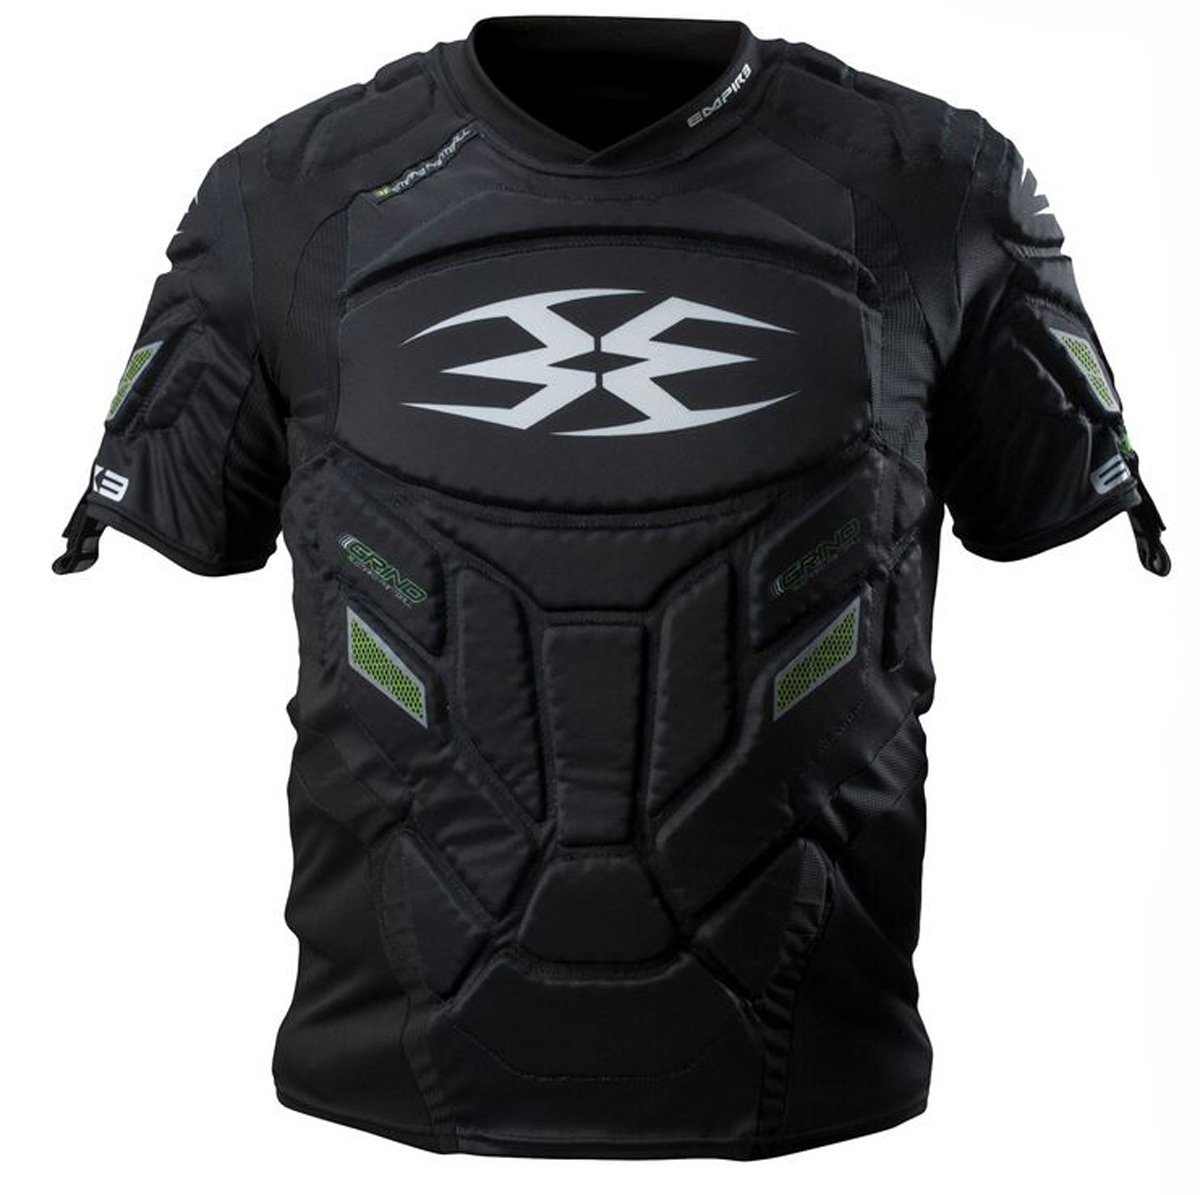 Empire Paintball Grind Chest Protectors